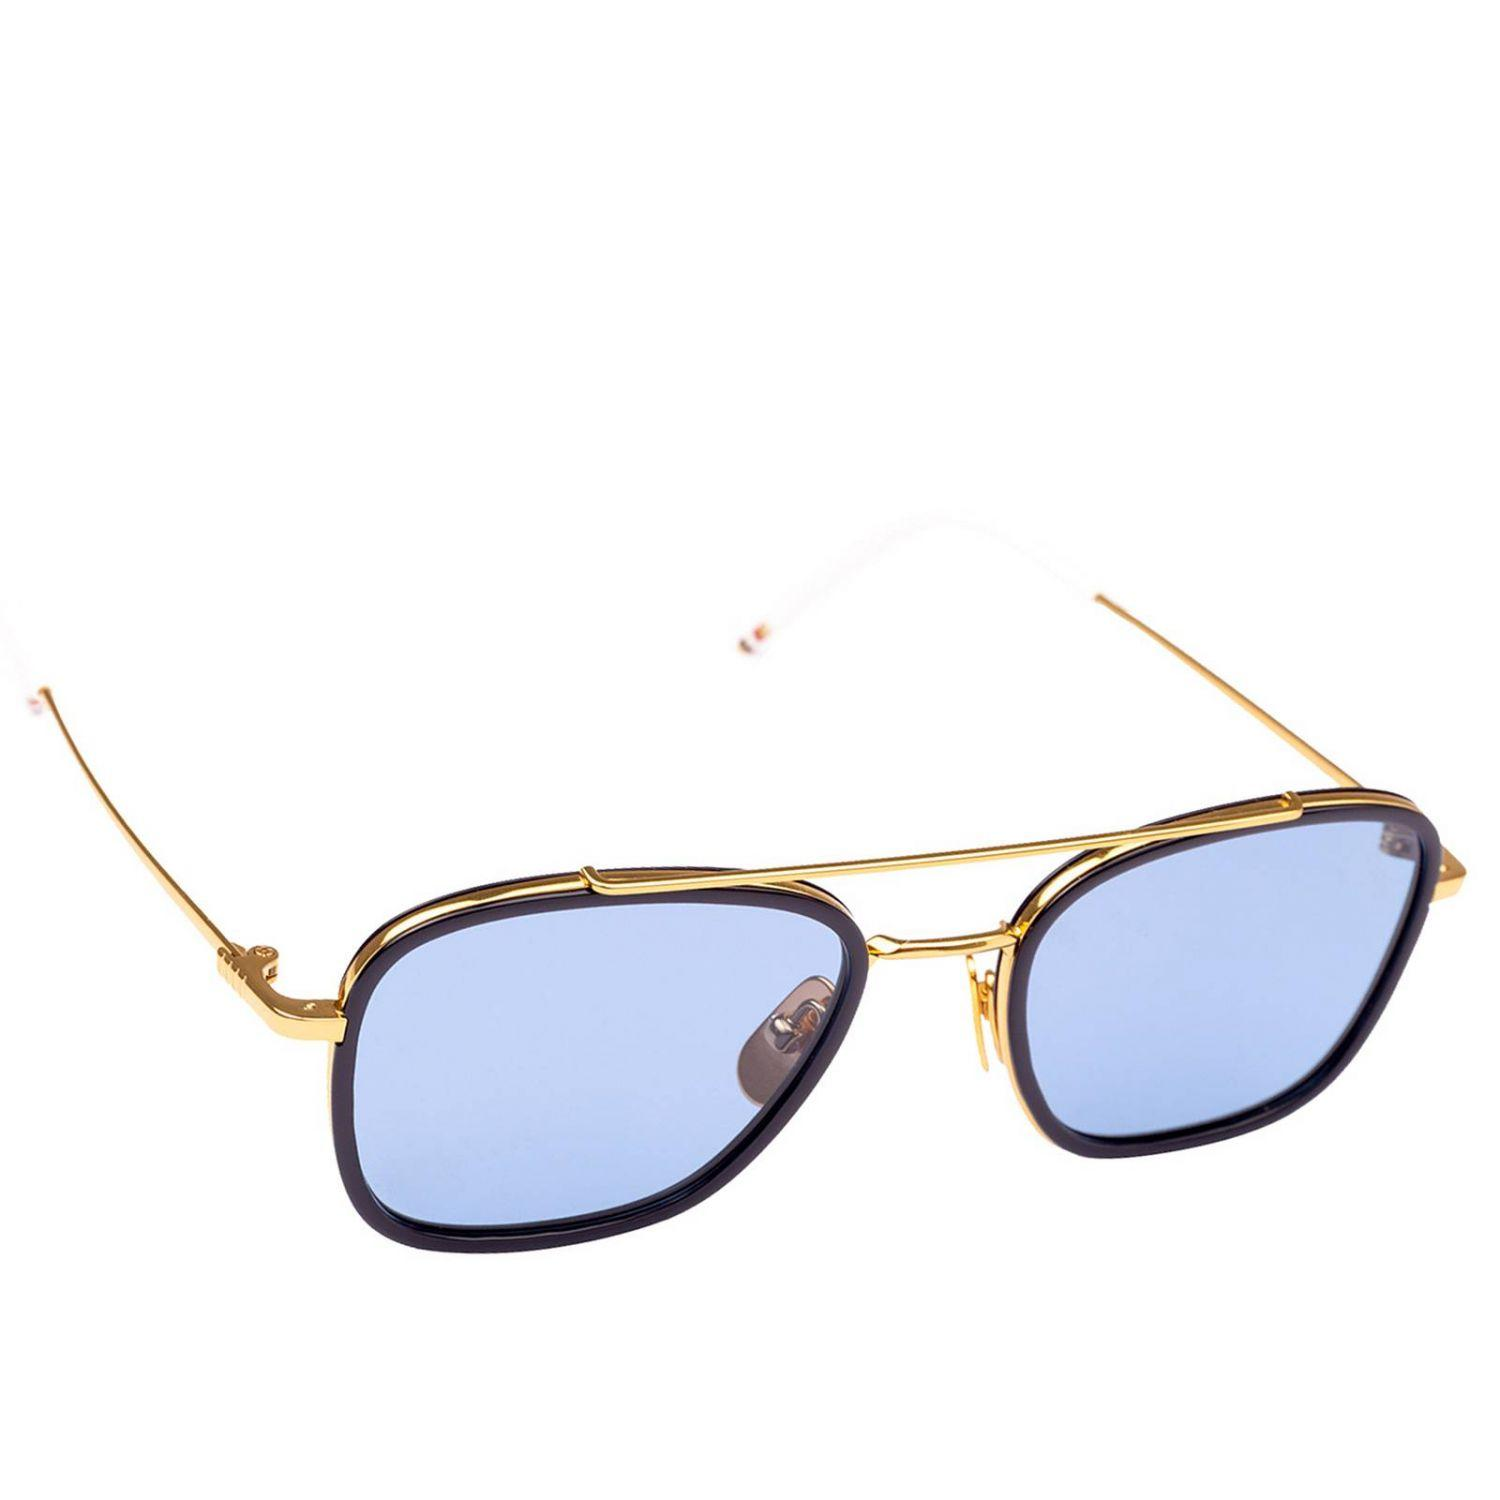 7d945b20bfb5a Thom Browne Glasses Eyewear Men in Blue for Men - Lyst